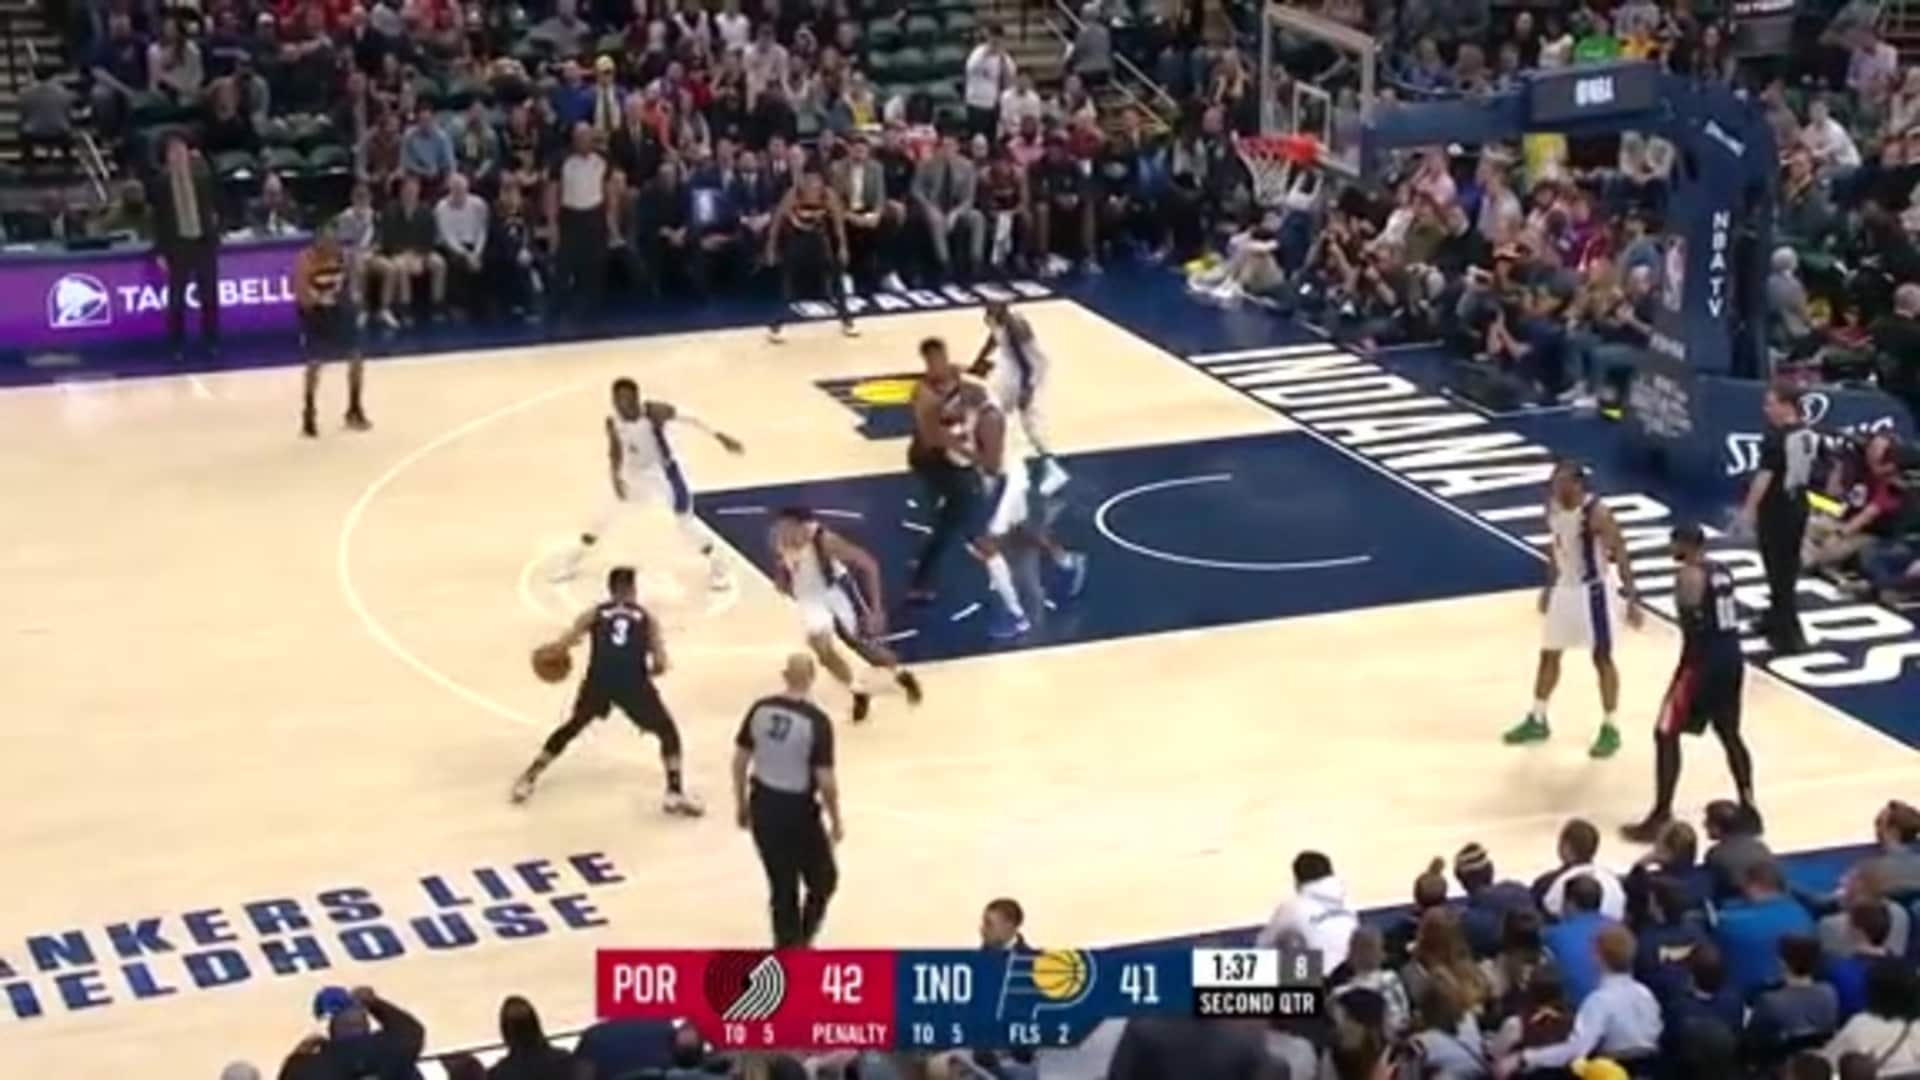 McCollum hits back-to-back threes near the end of the first half